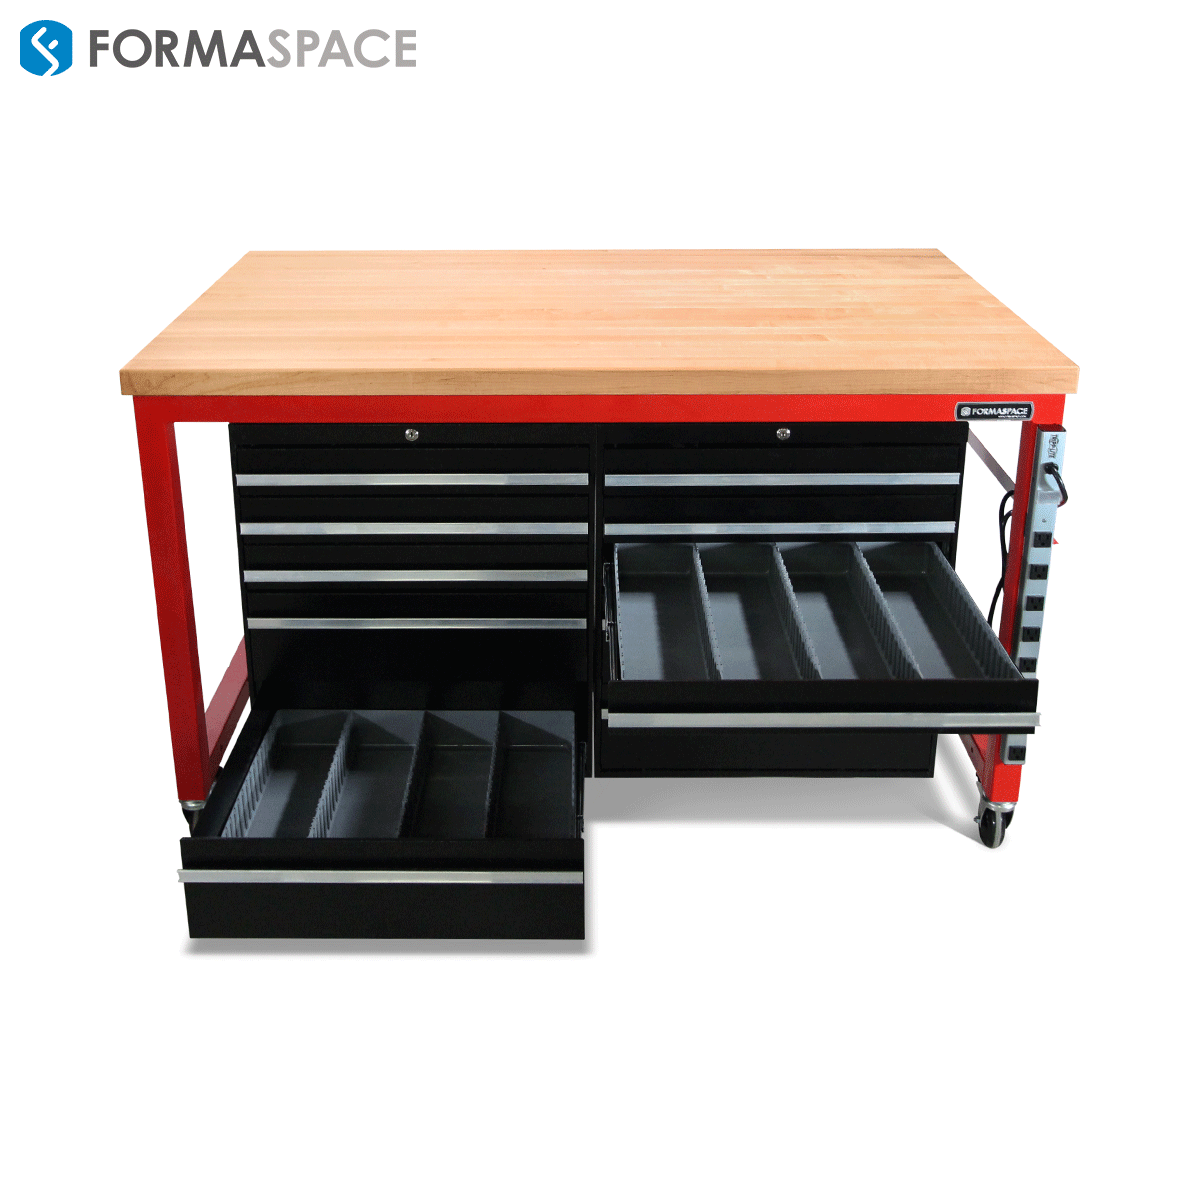 tool storage system with locking drawers